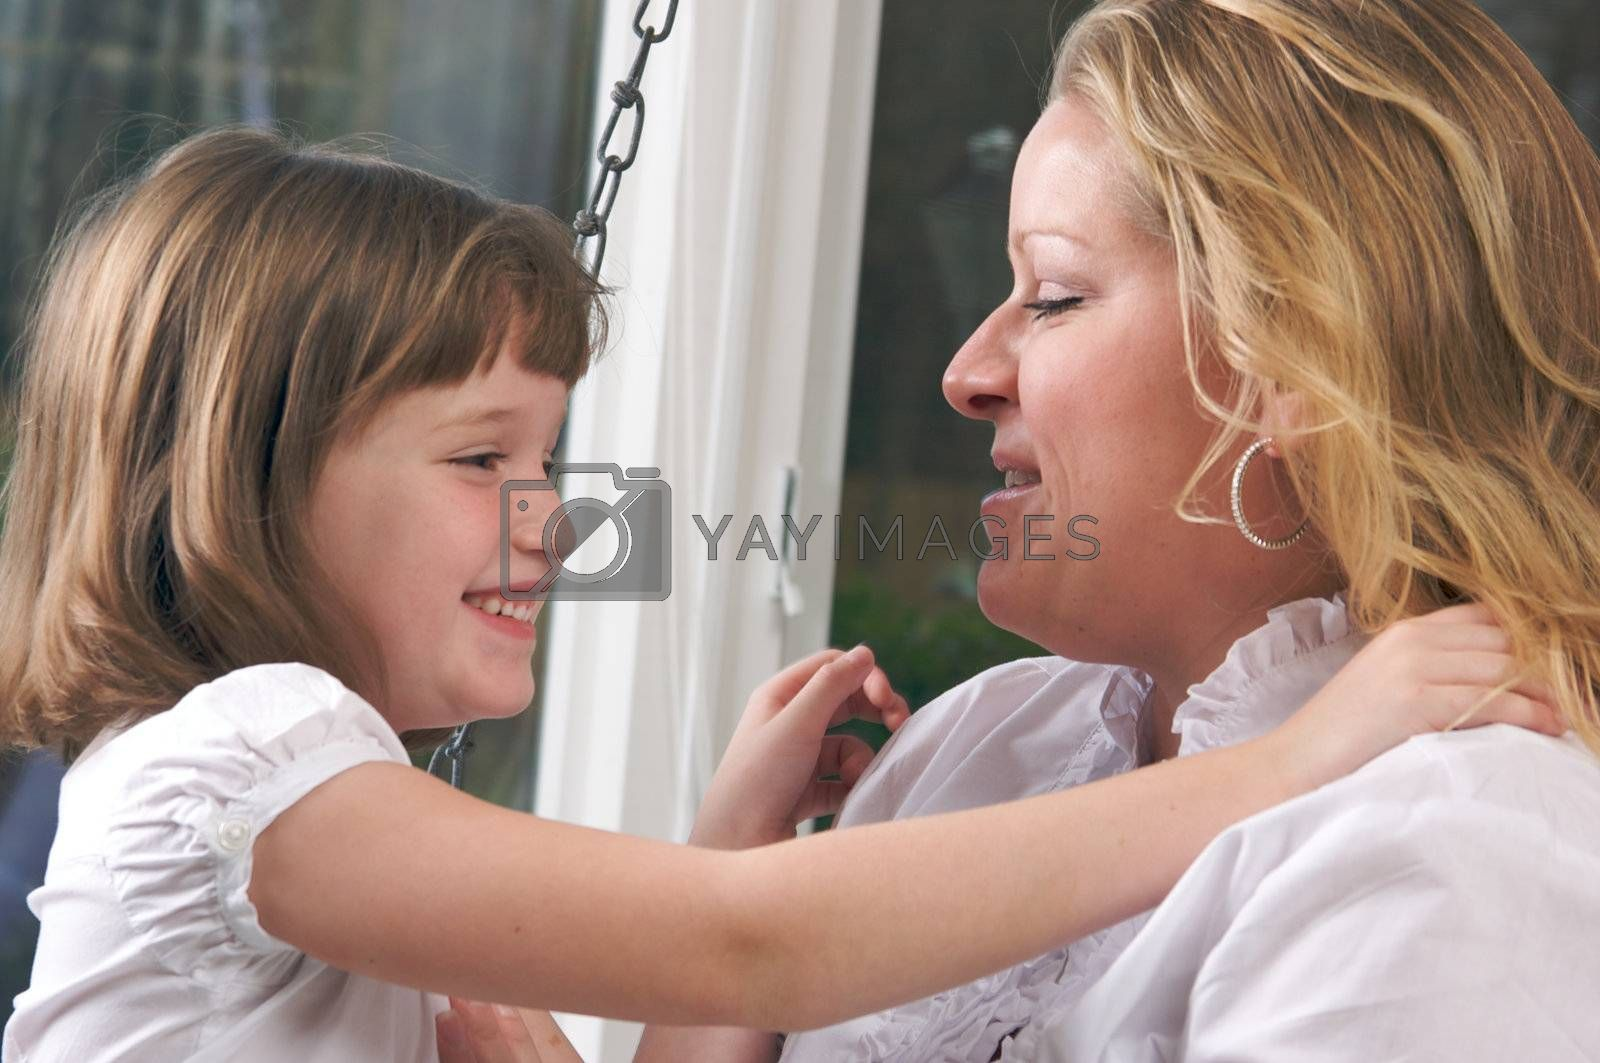 Young Mother and Daughter Enjoying a Personal Moment